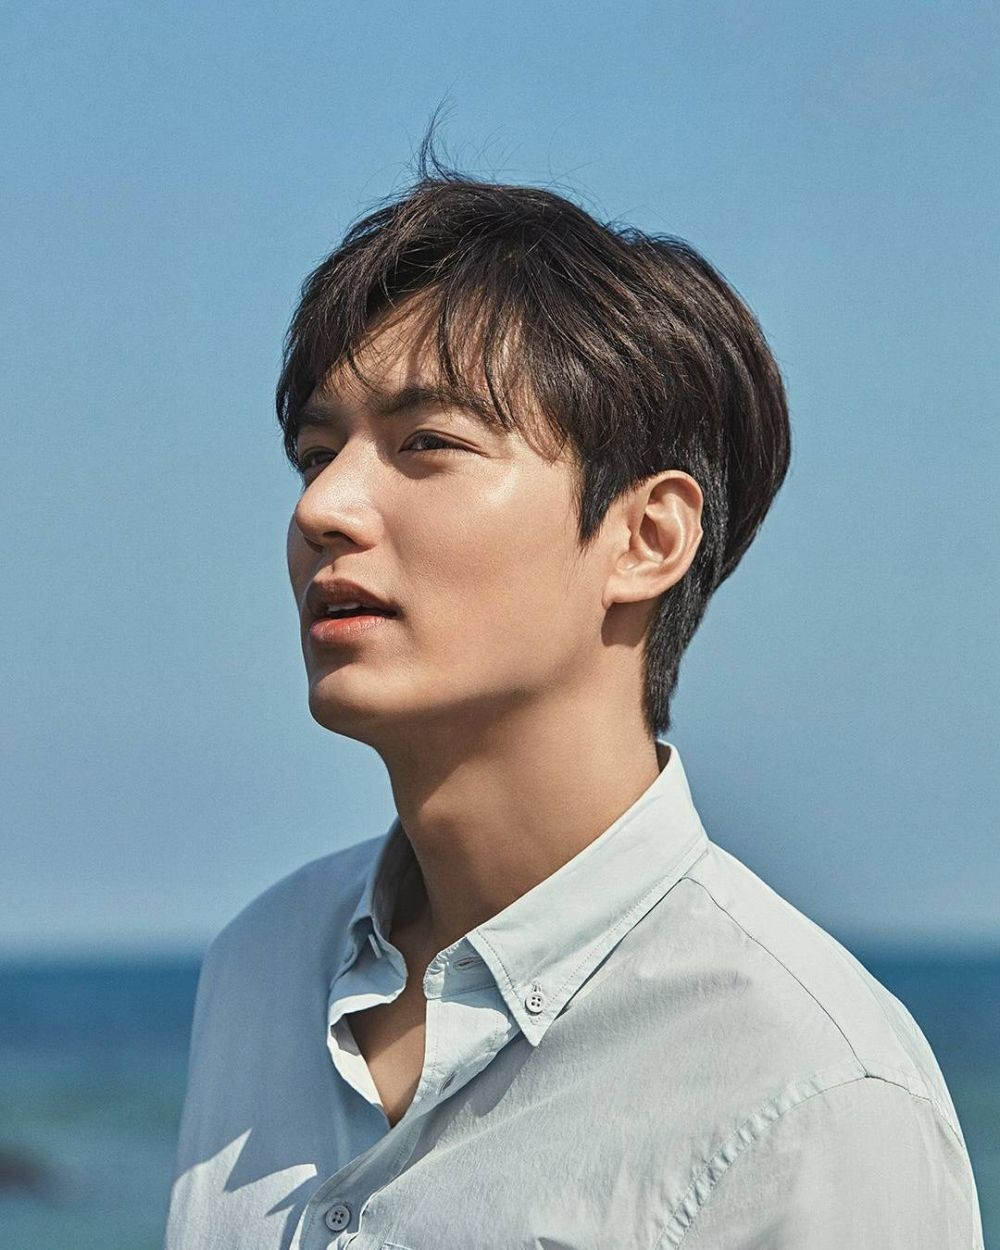 Birthdays, These are 15 Facts about Lee Min Ho that Not Many People Know